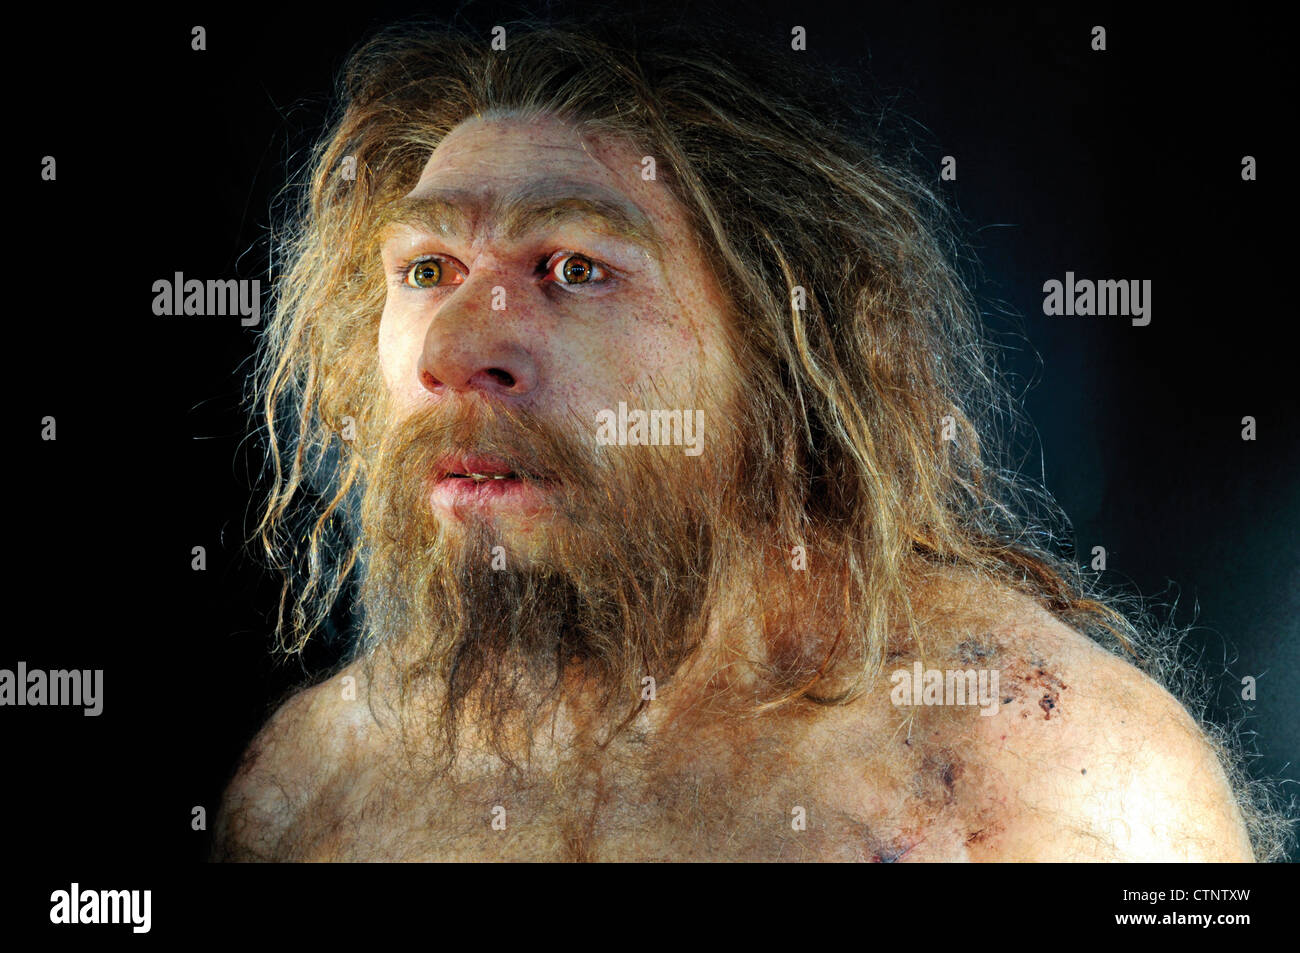 Spain, Burgos: Reproduction of a  male Homo neanderthalensis in the Museum of Human Evolution - Stock Image